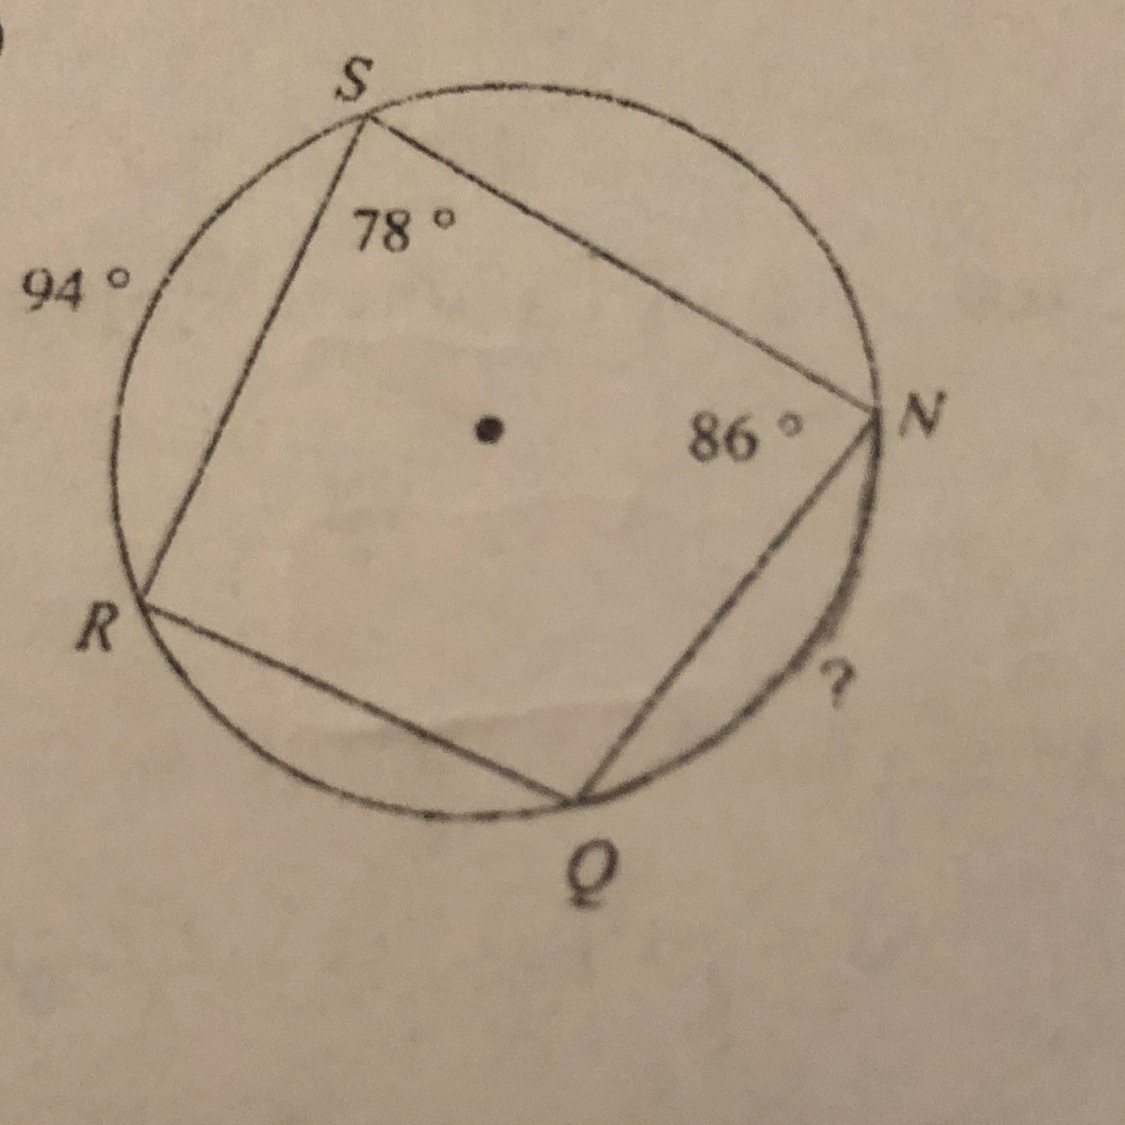 Find The Measure Of The Arc Or Angle Indicated